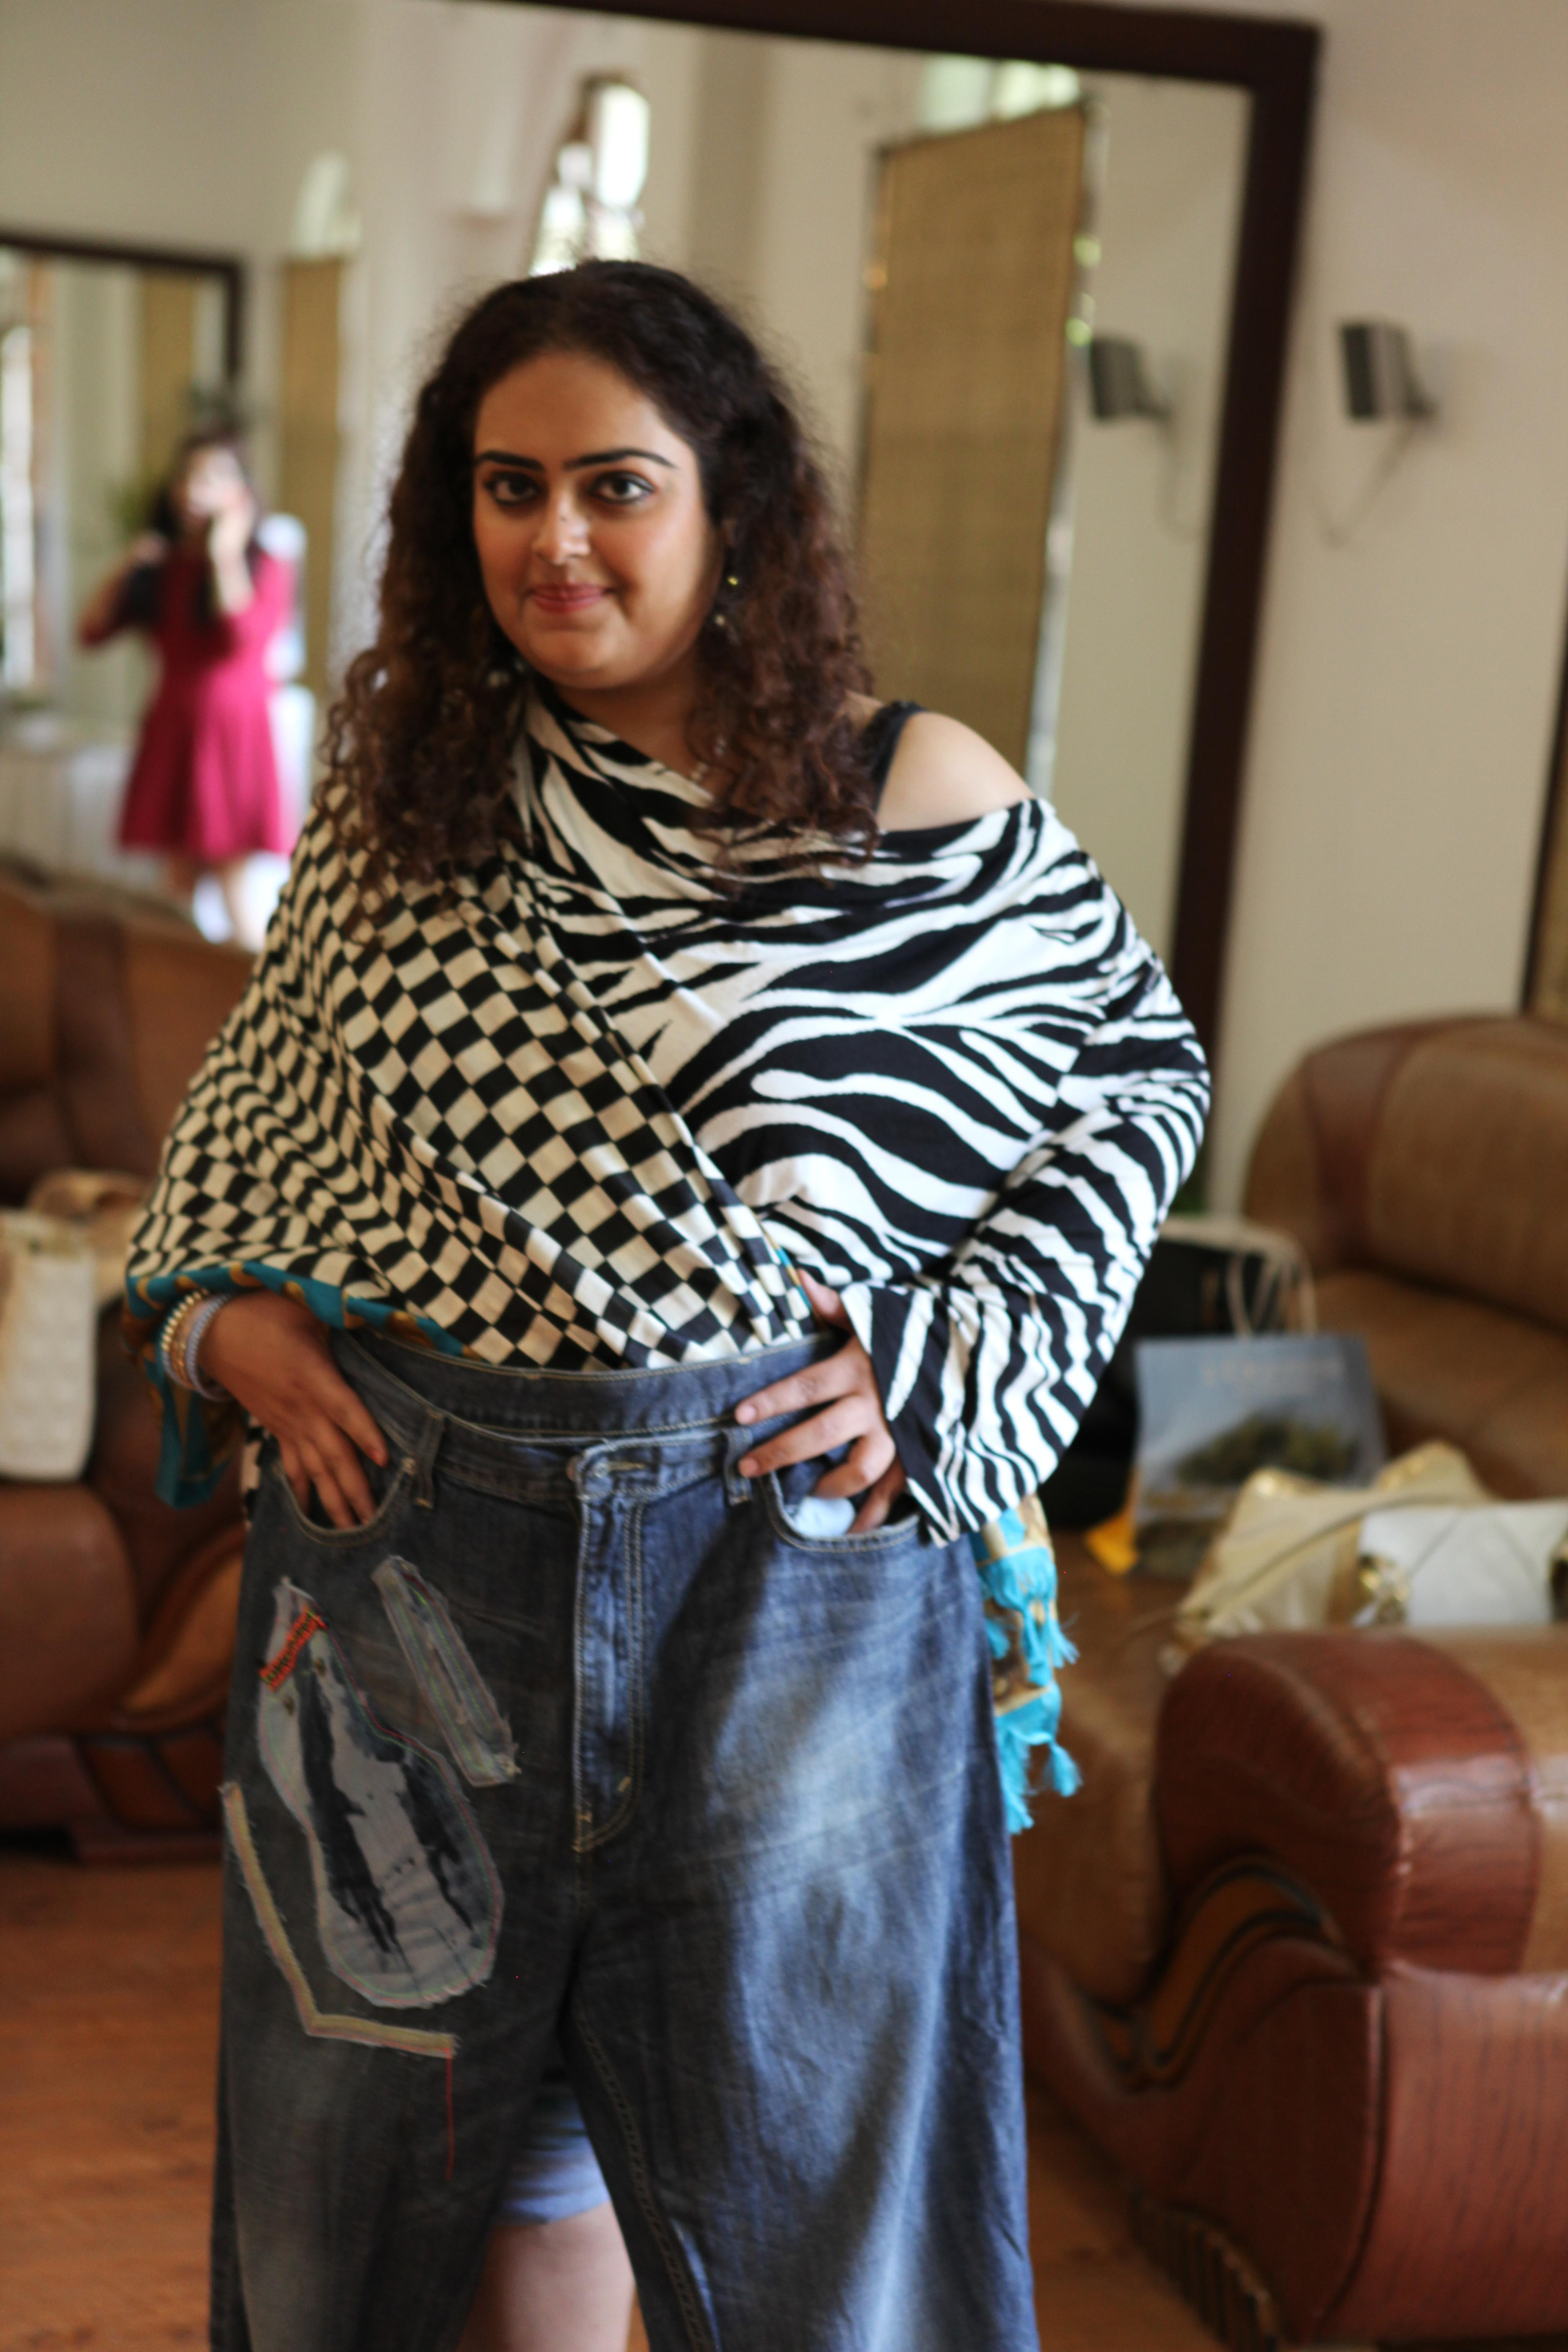 a jeans makeover by iml chiclifebyte all girls love denims in and abroad so internationally too the market is ready for the denim makeover syndrome some materials had shimmer and wax